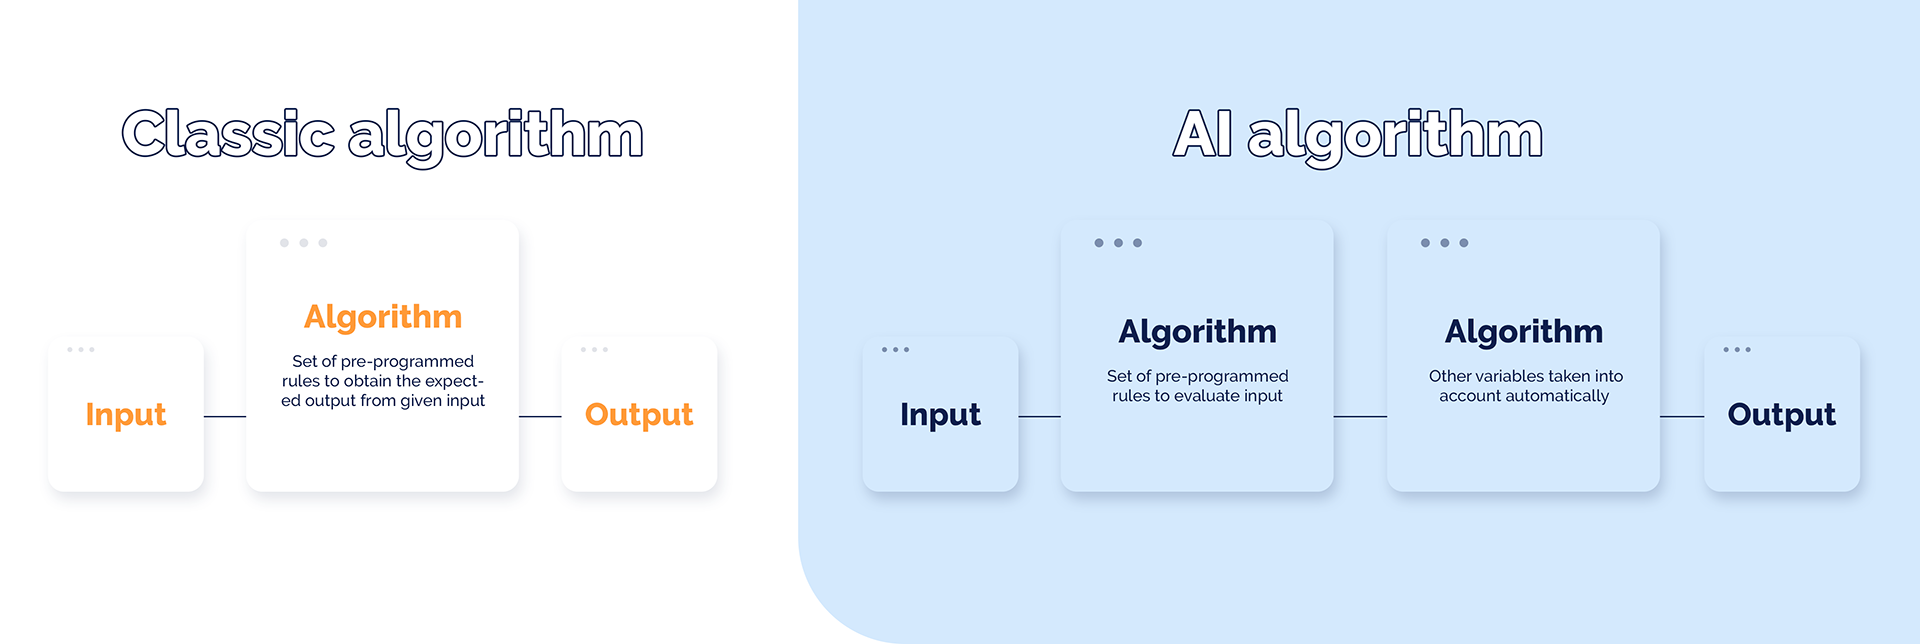 Difference between classic algorithm and AI algorith